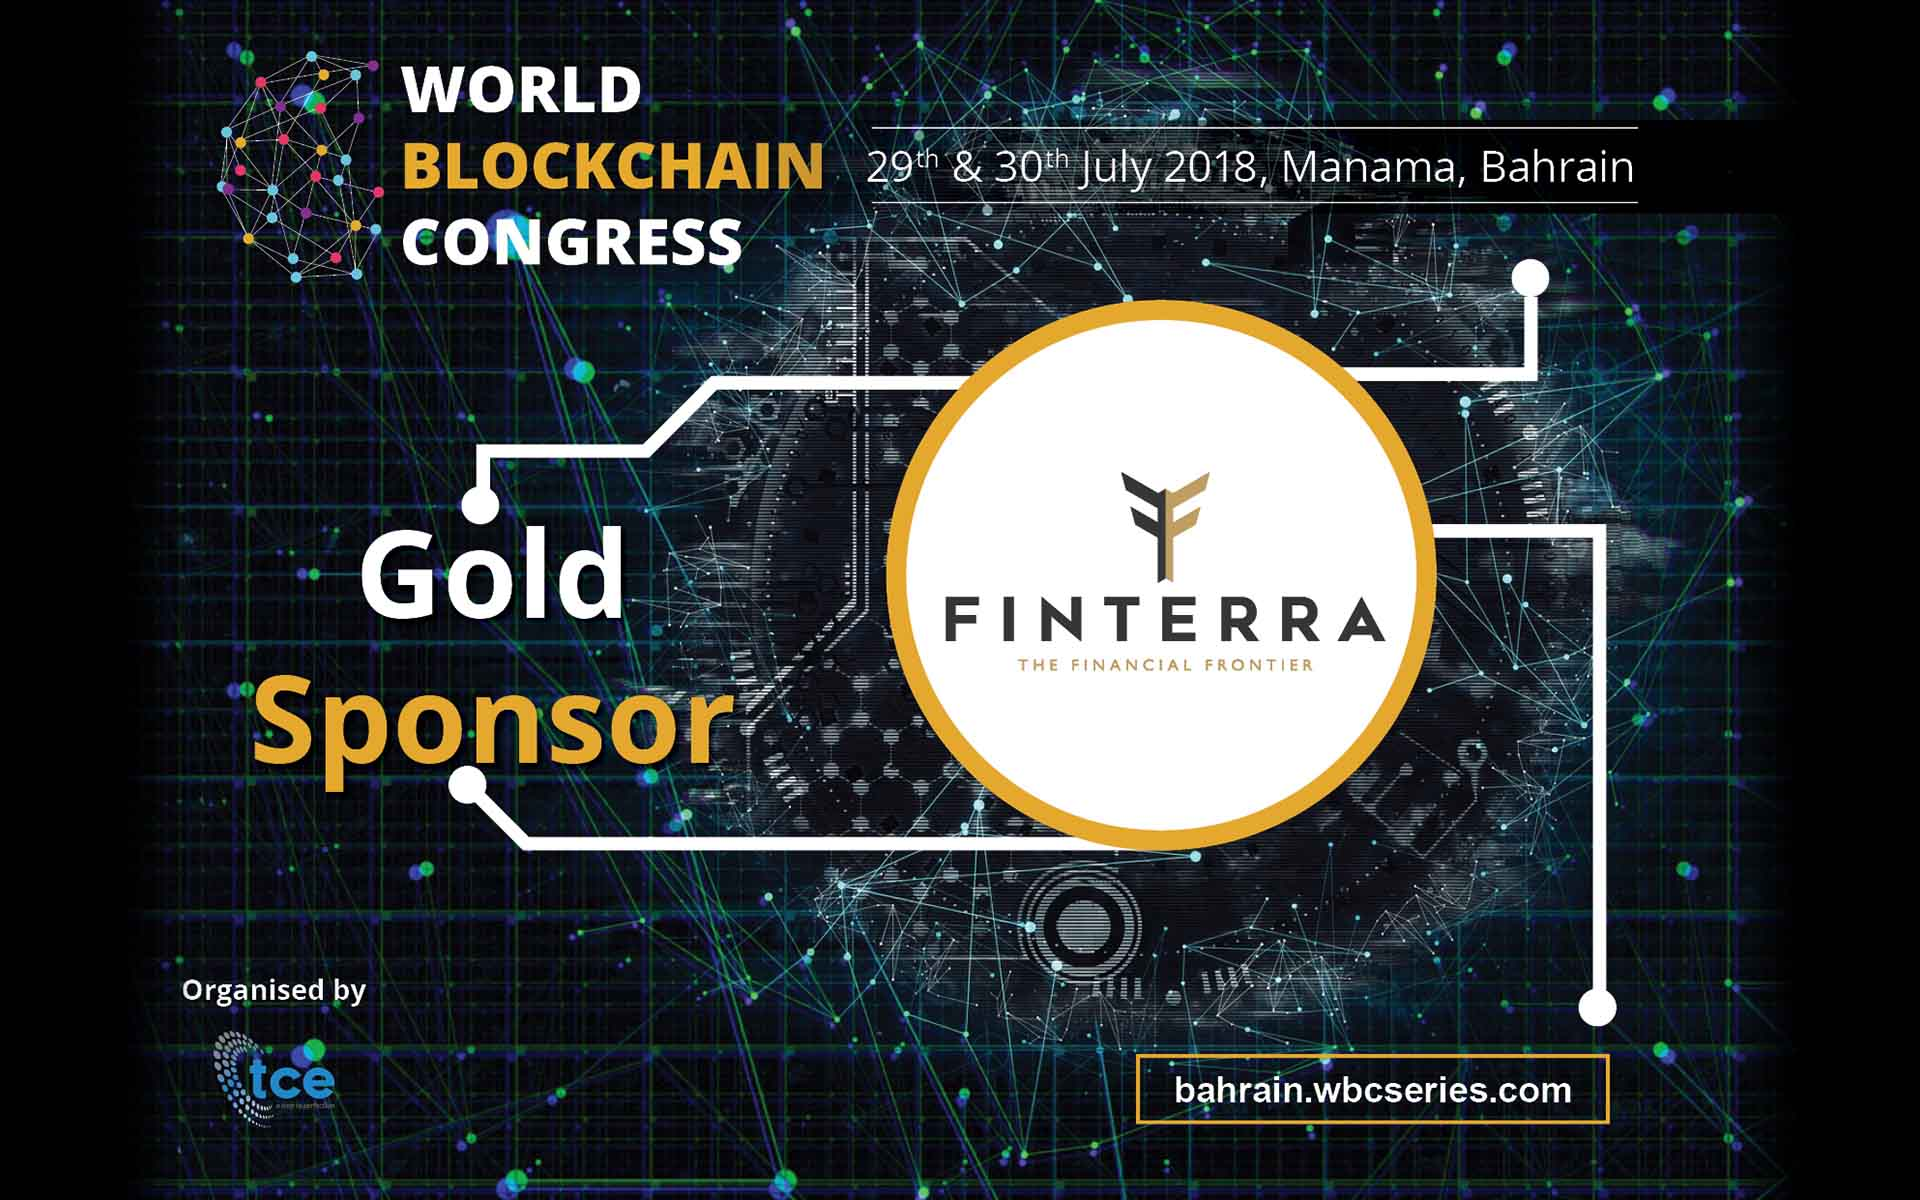 Finterra Pte Ltd Confirmed as the Official Gold Sponsor for World Blockchain Congress Bahrain 2018